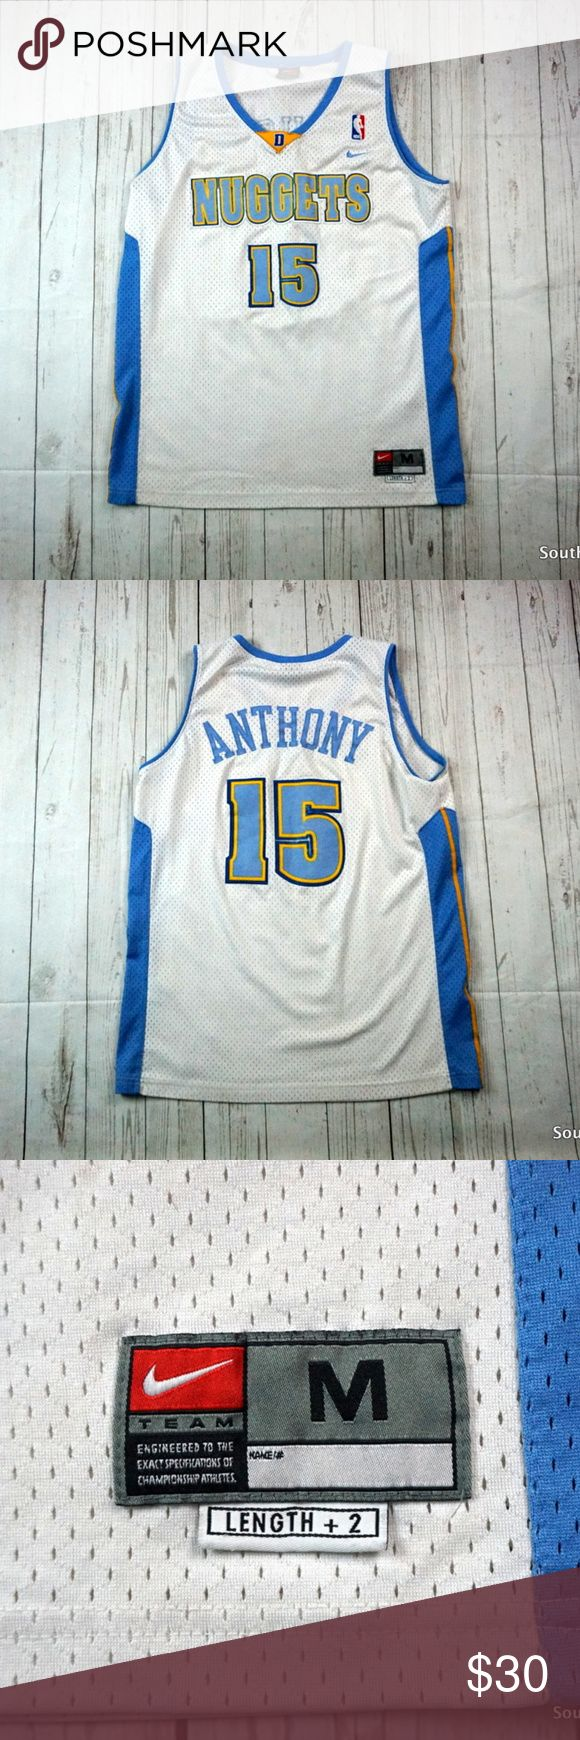 "Nike Denver Nuggets #15 Carmelo Anthony Jersey M Men's Nike Denver Nuggets #15 Carmelo Anthony White NBA Swingman Jersey Sz M  Jersey is in good condition overall has no rips stains or tears. Minor fading on the letters and numbers due to age  Brand: Nike Size: Men's Medium Material: Polyester  Detailed Measurements: (Front Side of Garment has been measured laying flat on a table)  Chest:                     22"" inches Length:              28"" inches  Ships in 1 business day or less from a…"